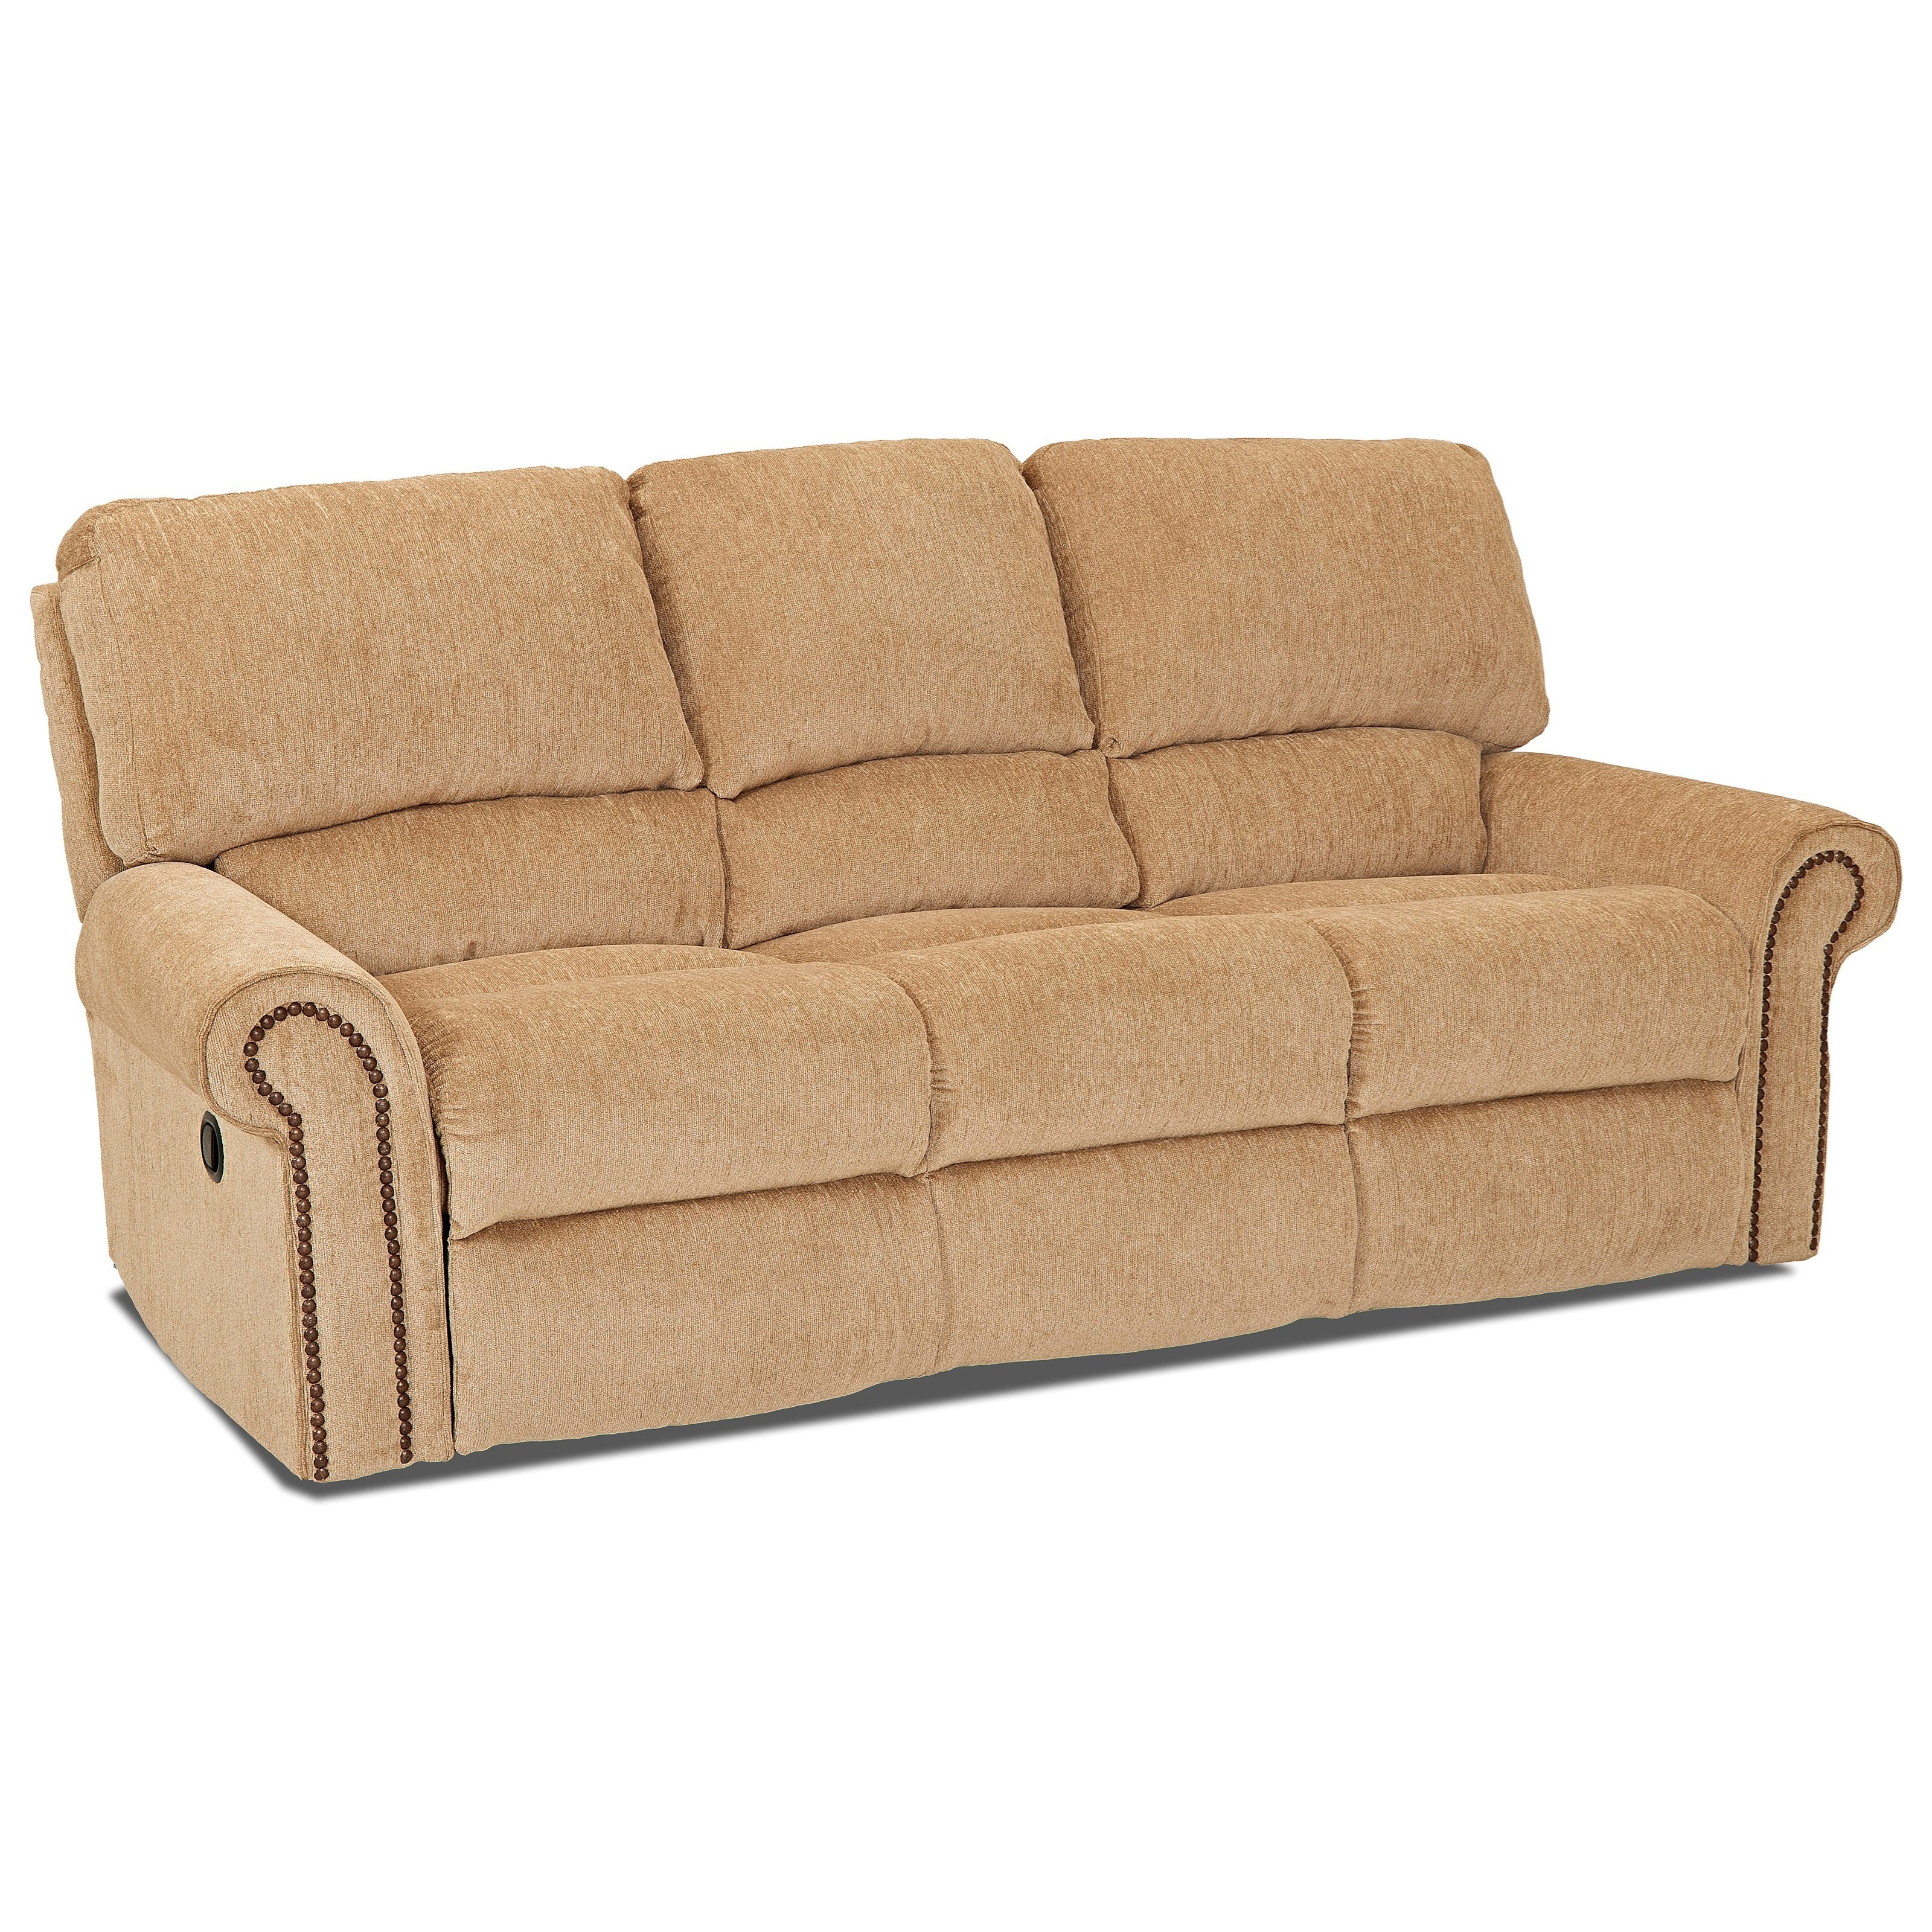 rolled arm sofa nz leather sets made in usa reclining with arms and nailheads by klaussner